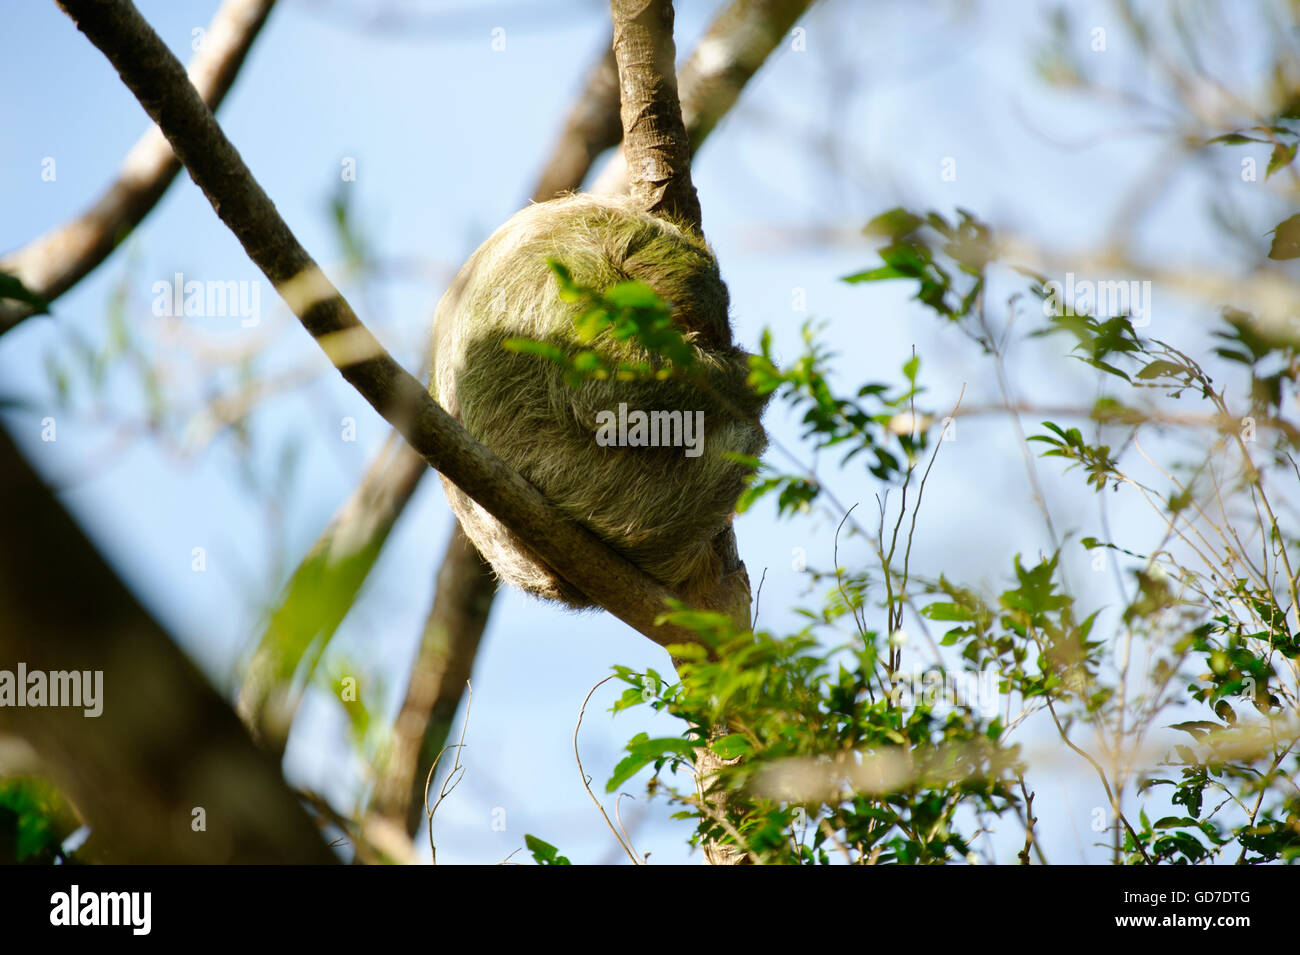 Sloth sleeping in a tree in Costa Rica - Stock Image